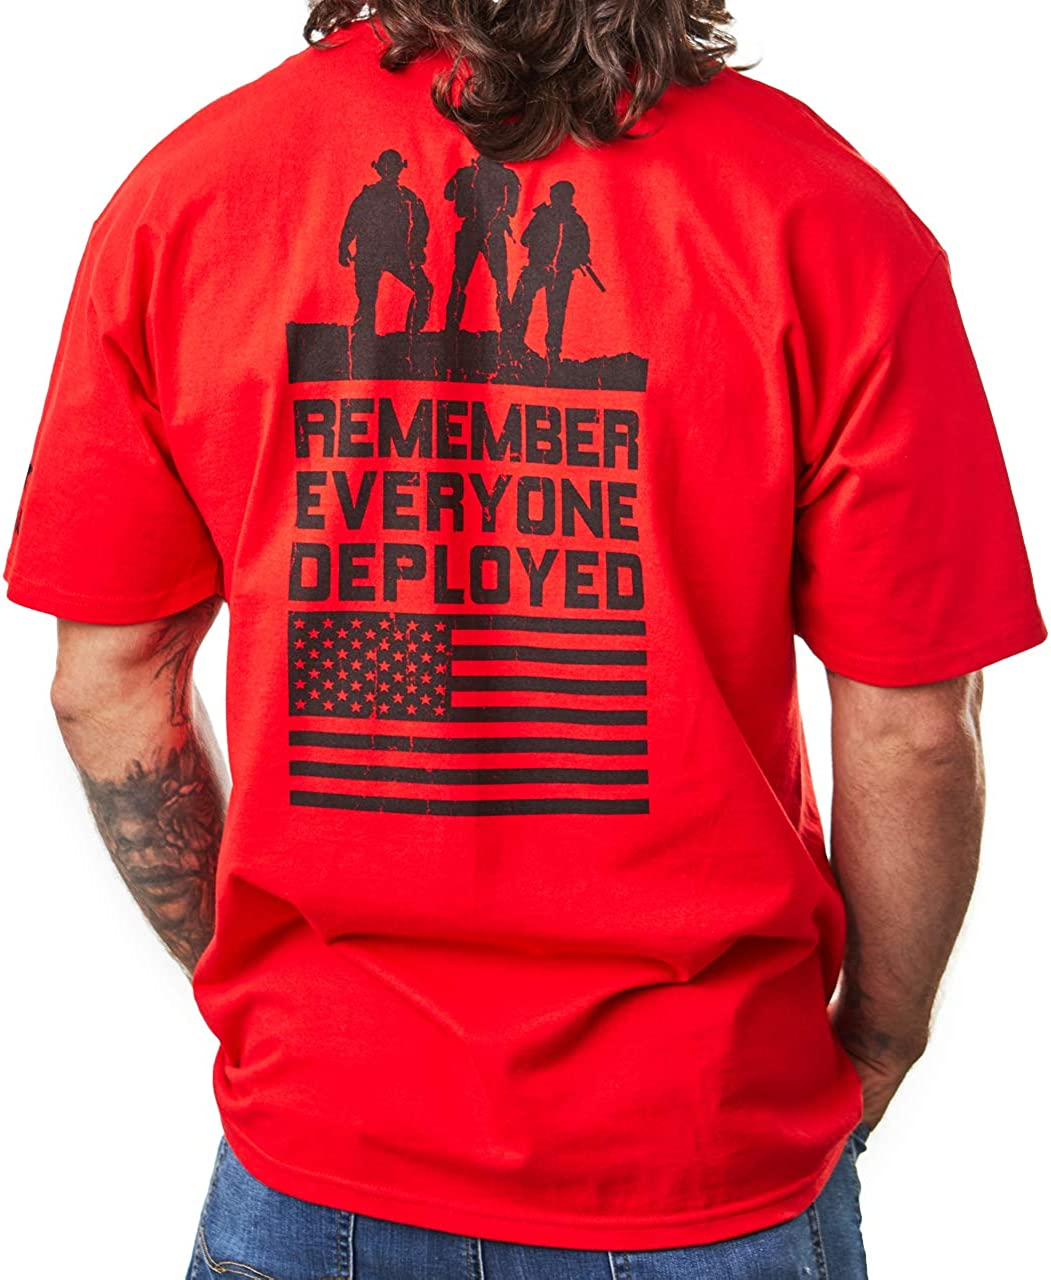 Bone Head Outfitters R.E.D. Soldiers-Remember Everyone Deployed R.E.D. Friday T-Shirt